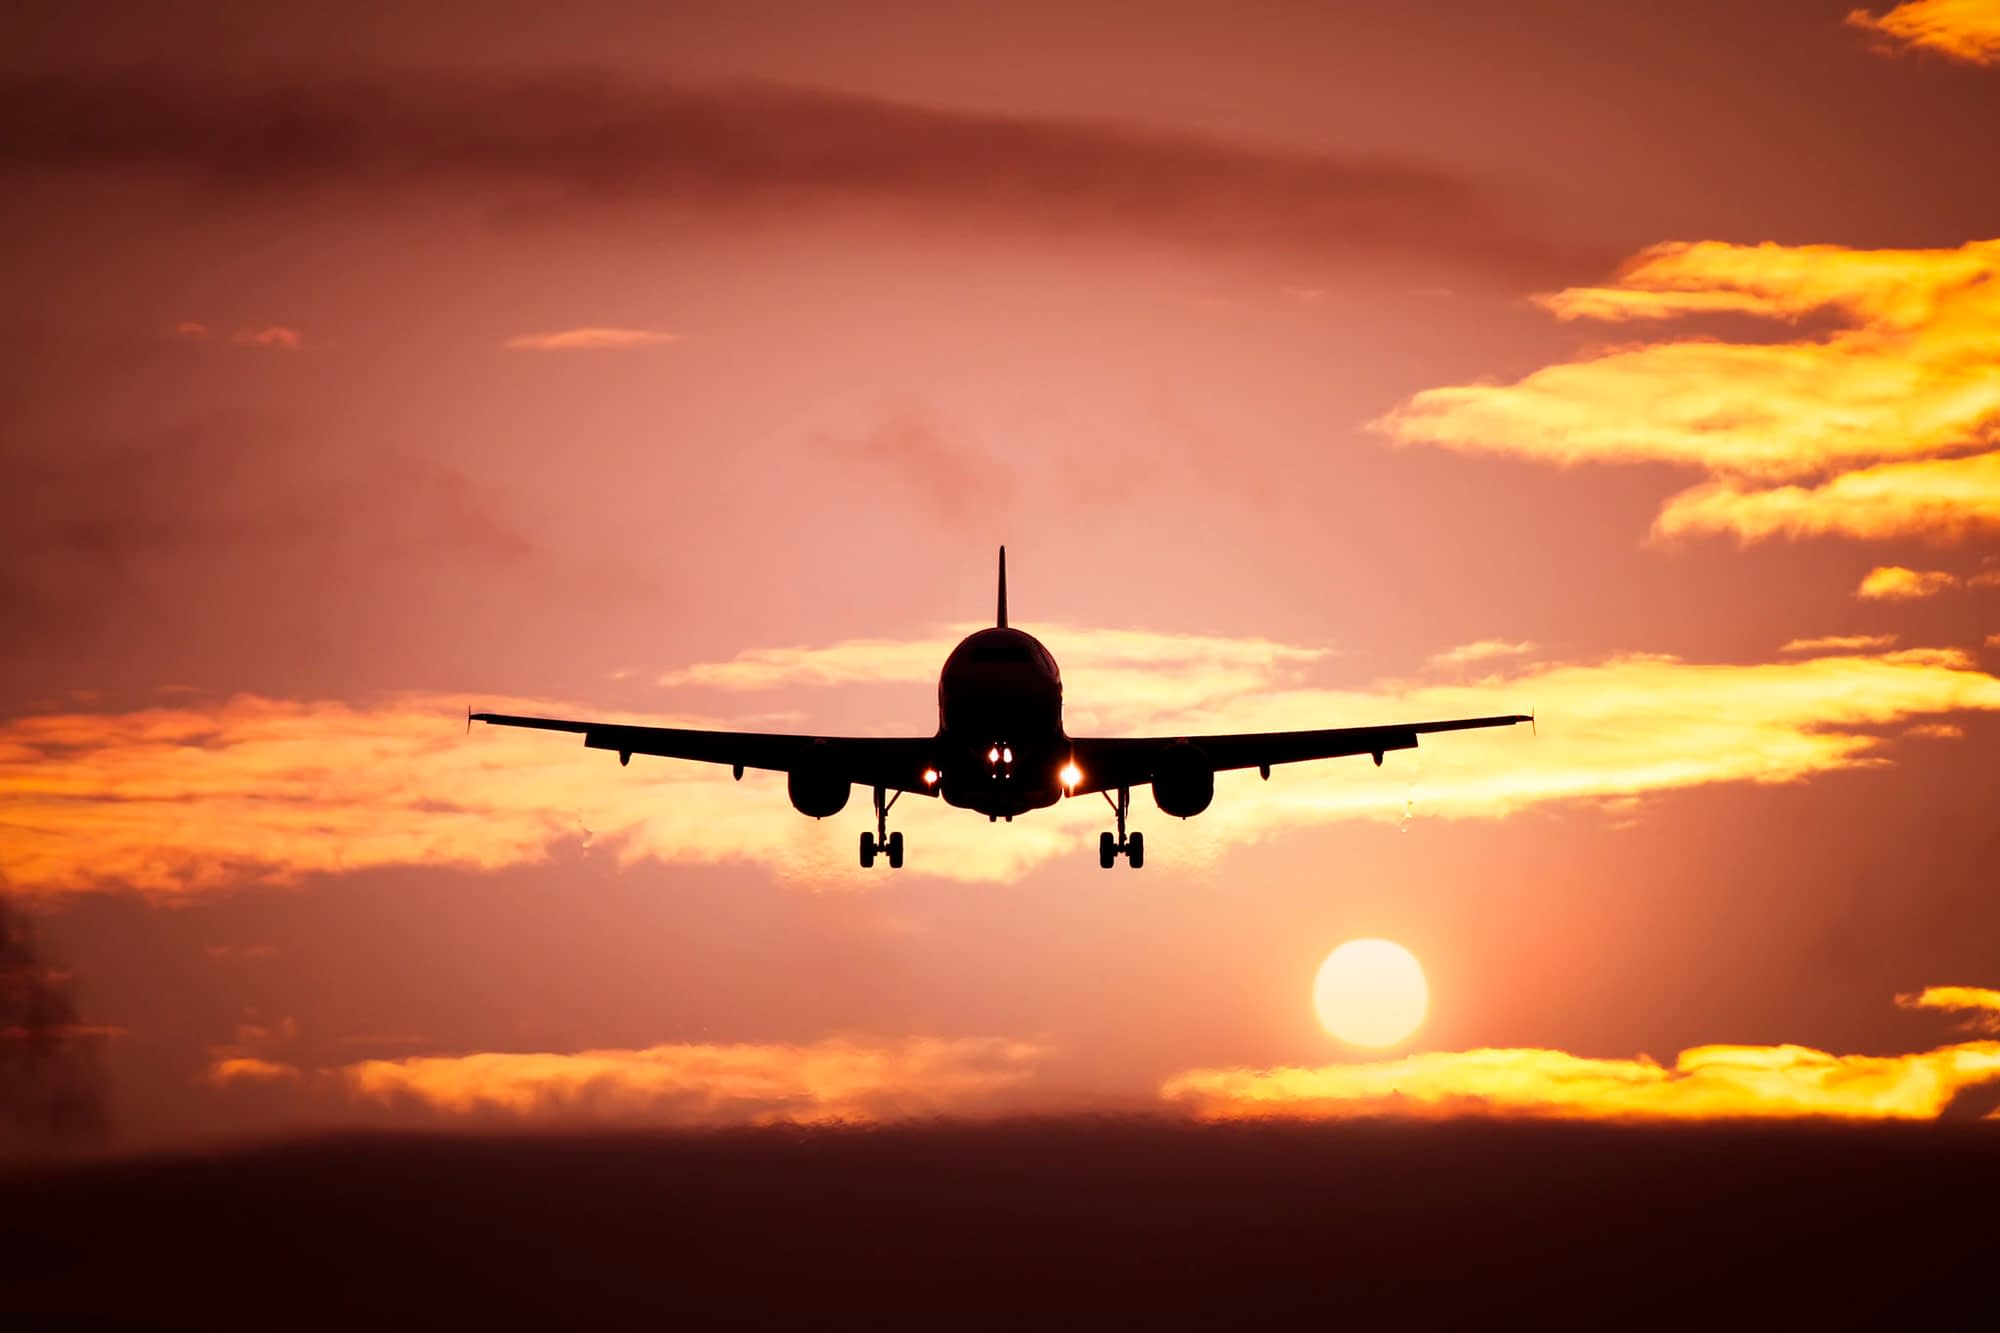 Source: Aviation World – Aluminium Alloys in the Aerospace Industry: Past, Present and Future